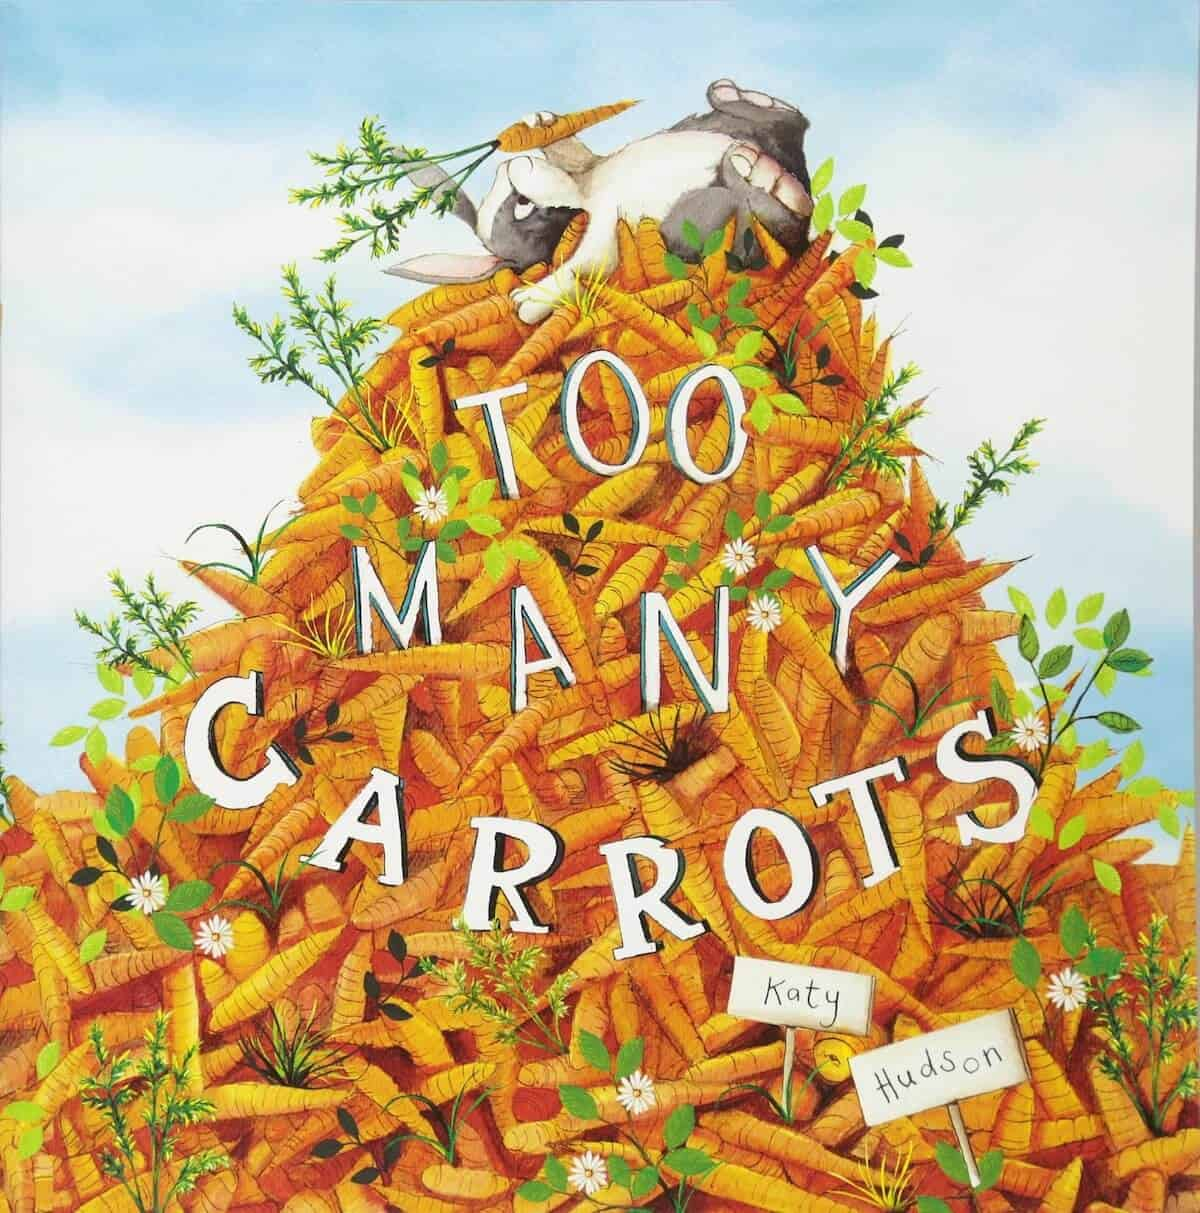 starting school books for kids - too many carrots